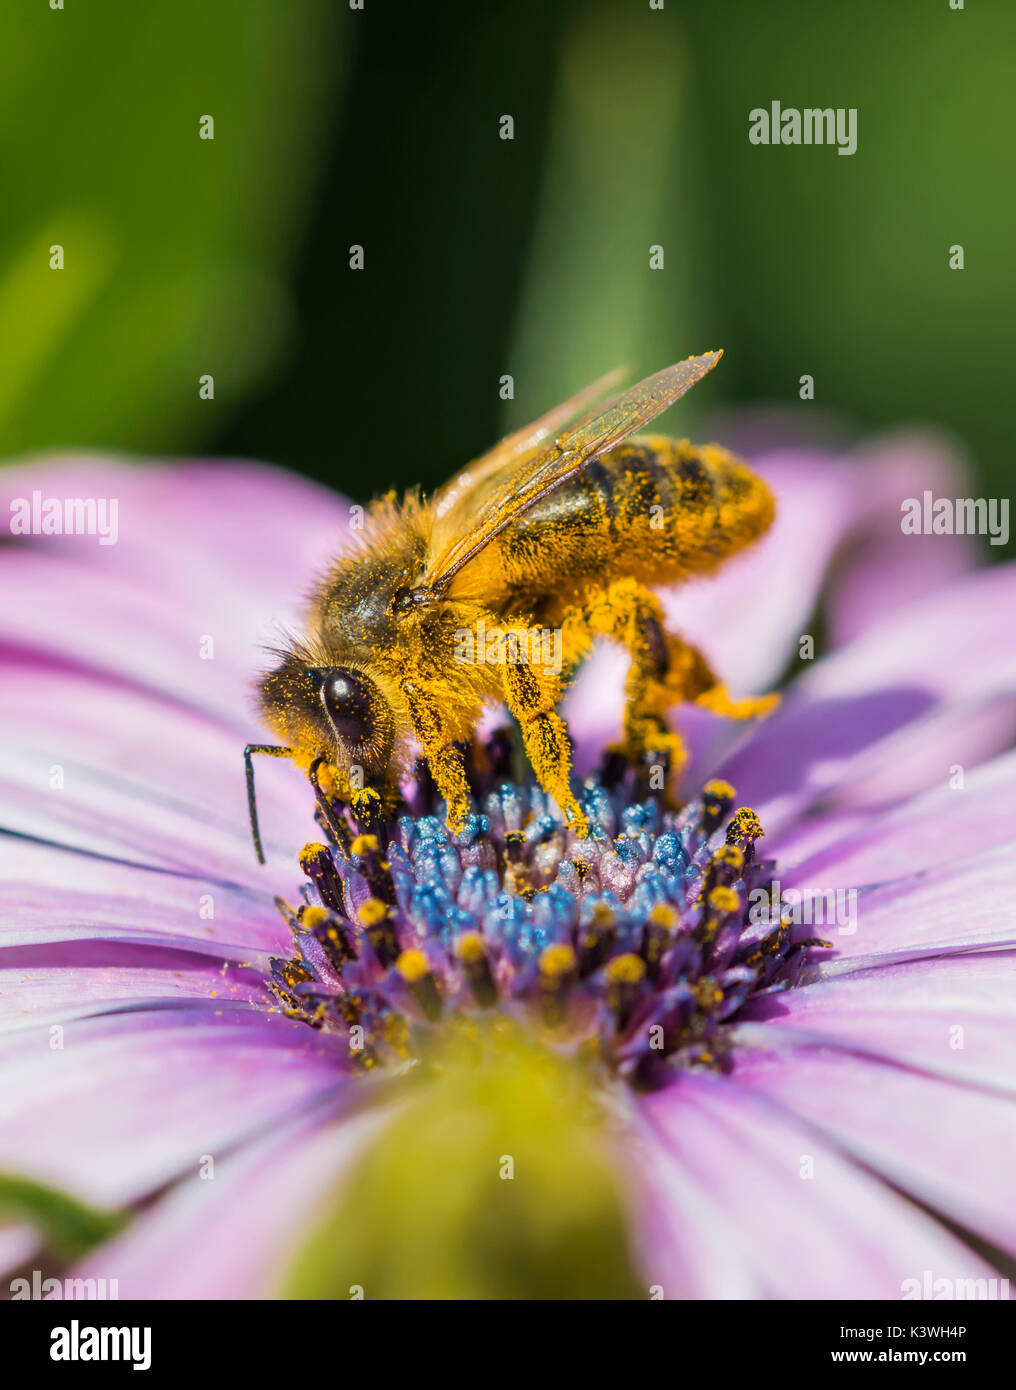 Apis mellifera (European Honey Bee) on a Osteospermum ecklonis (African daisy) collecting nectar / pollinating in Stock Photo